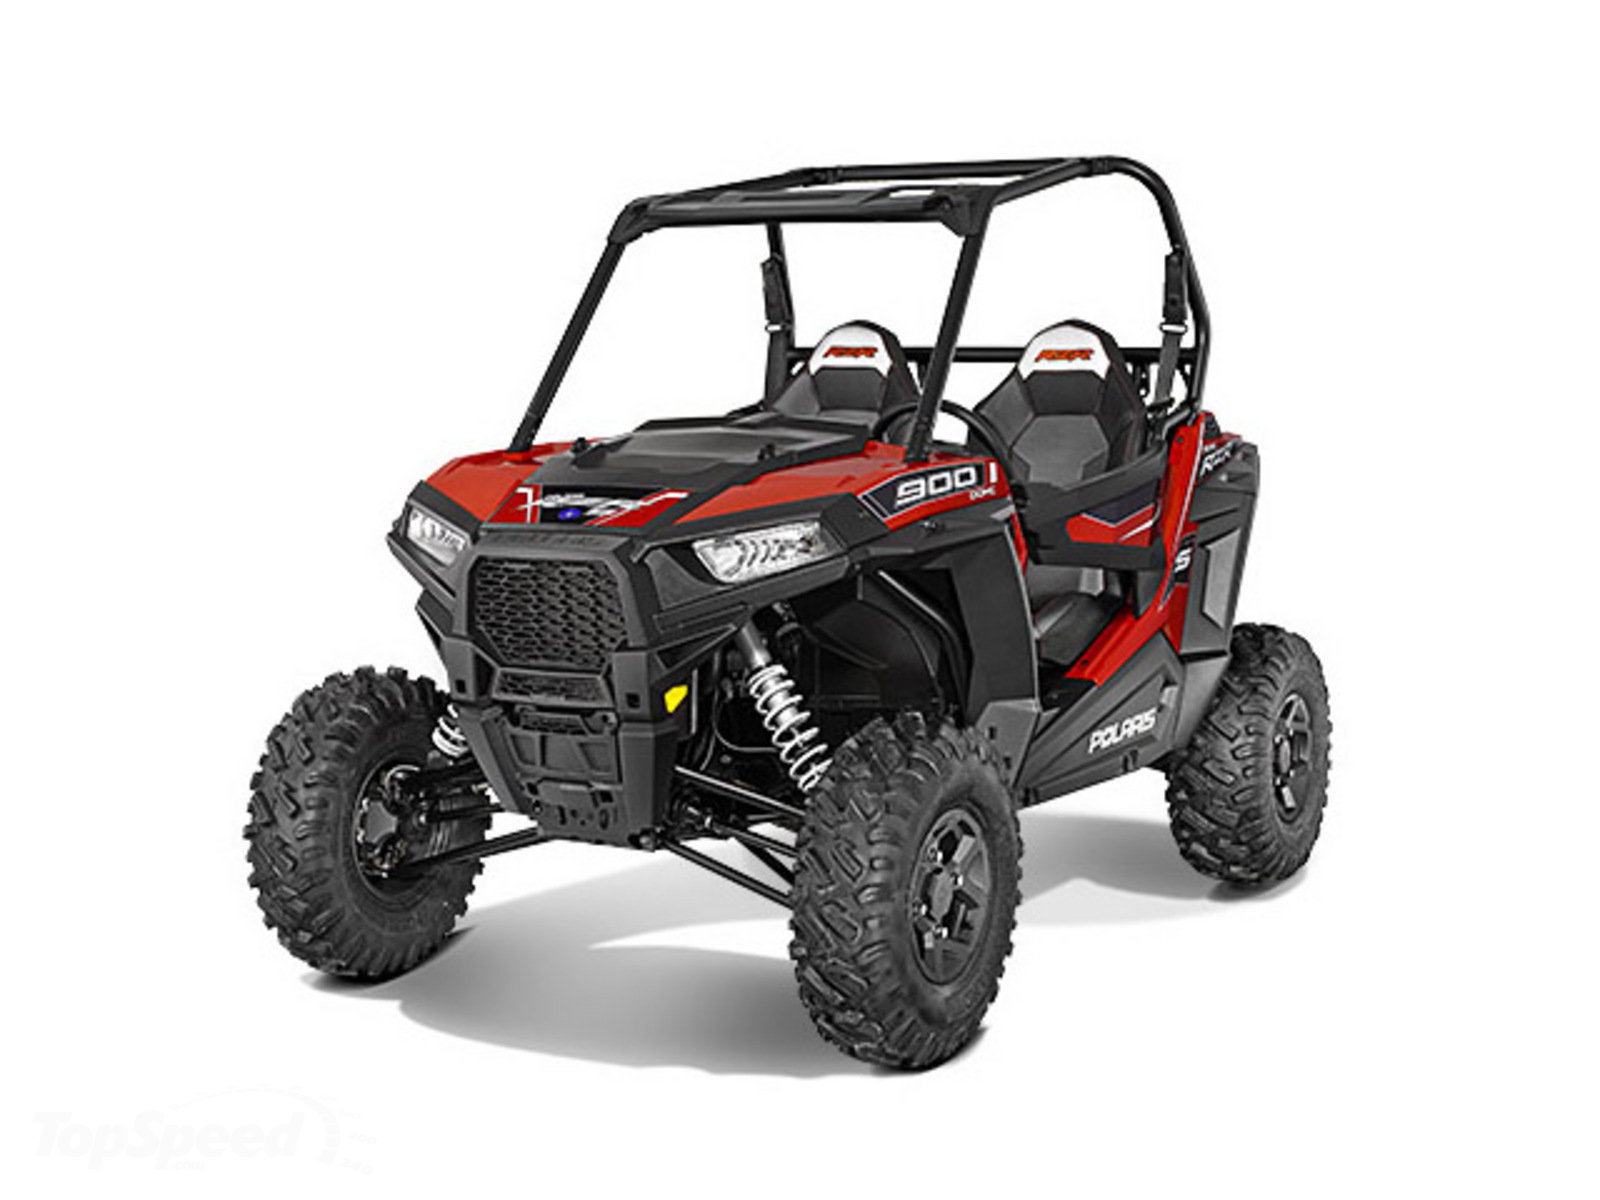 2015 polaris rzr s 900 eps review top speed. Black Bedroom Furniture Sets. Home Design Ideas